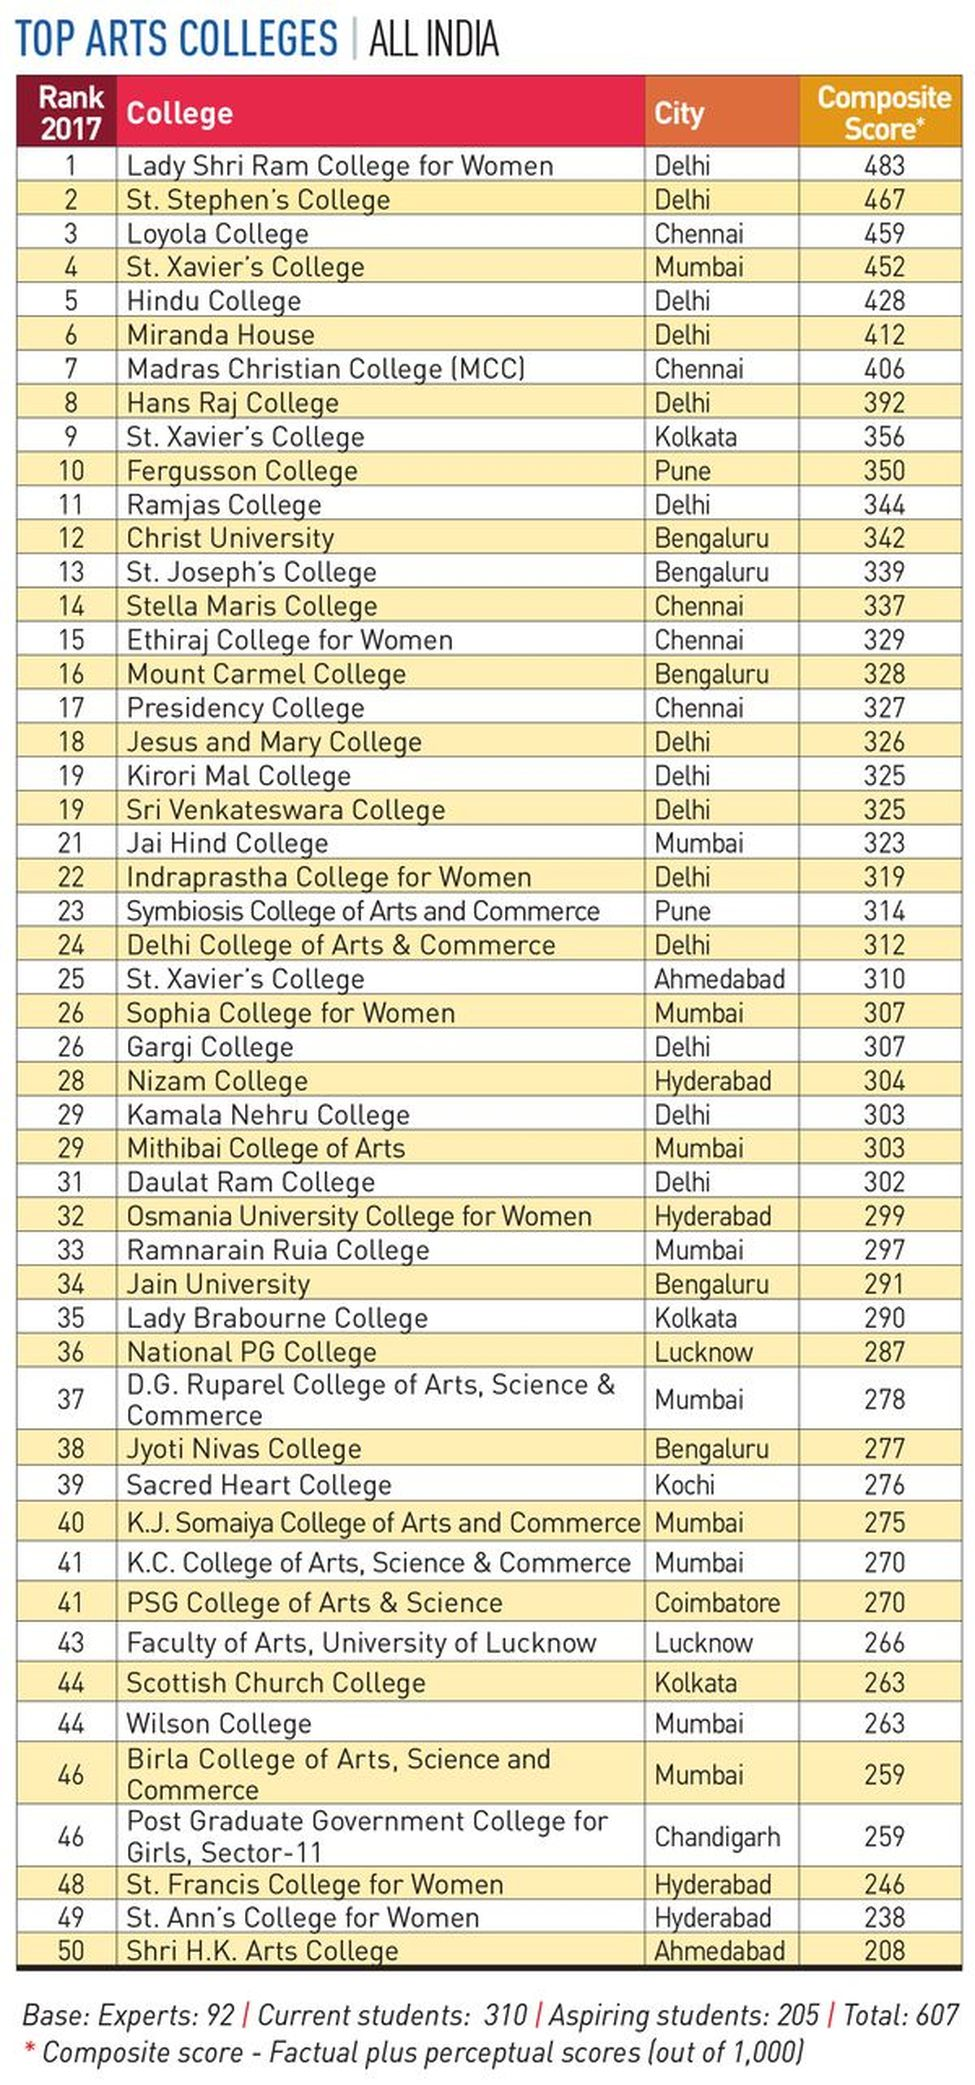 76-ARTS-COLLEGES